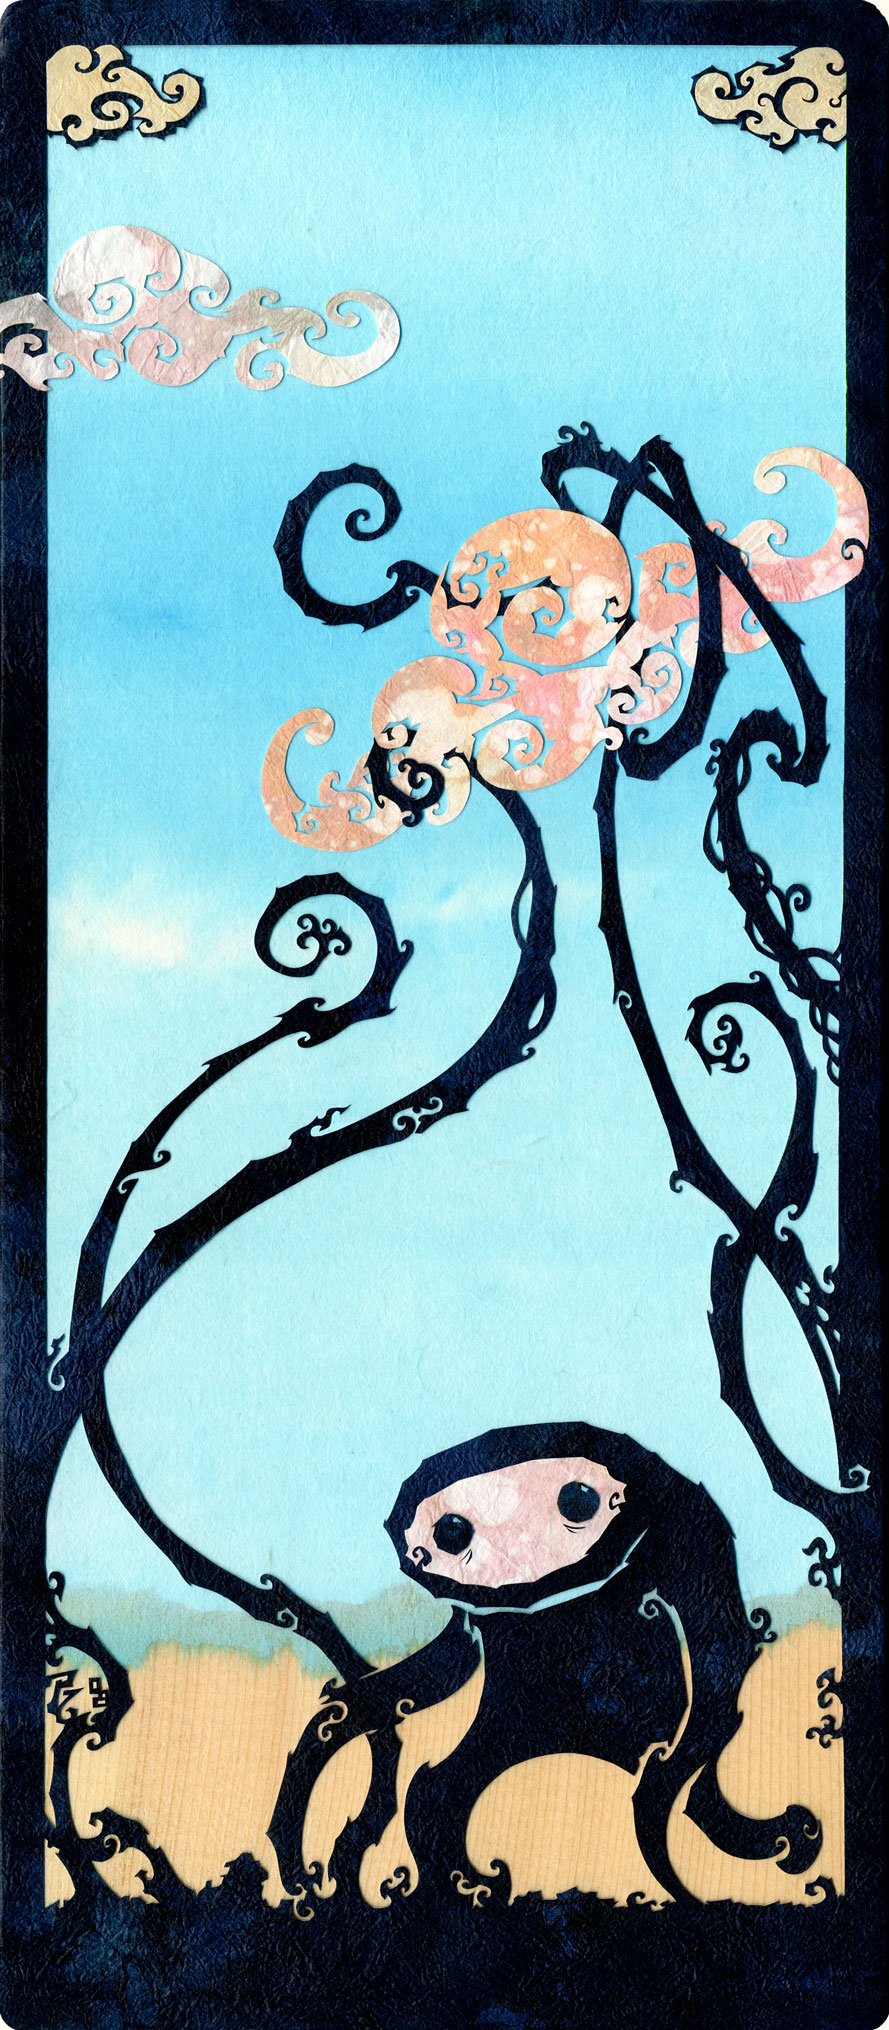 A Bright and Sunny Day  MEDIUM: CUT + TORN PAPER / WOOD   SIZE: 6 5/8 X 14 1/2 IN • 18.8 X 36.8 CM